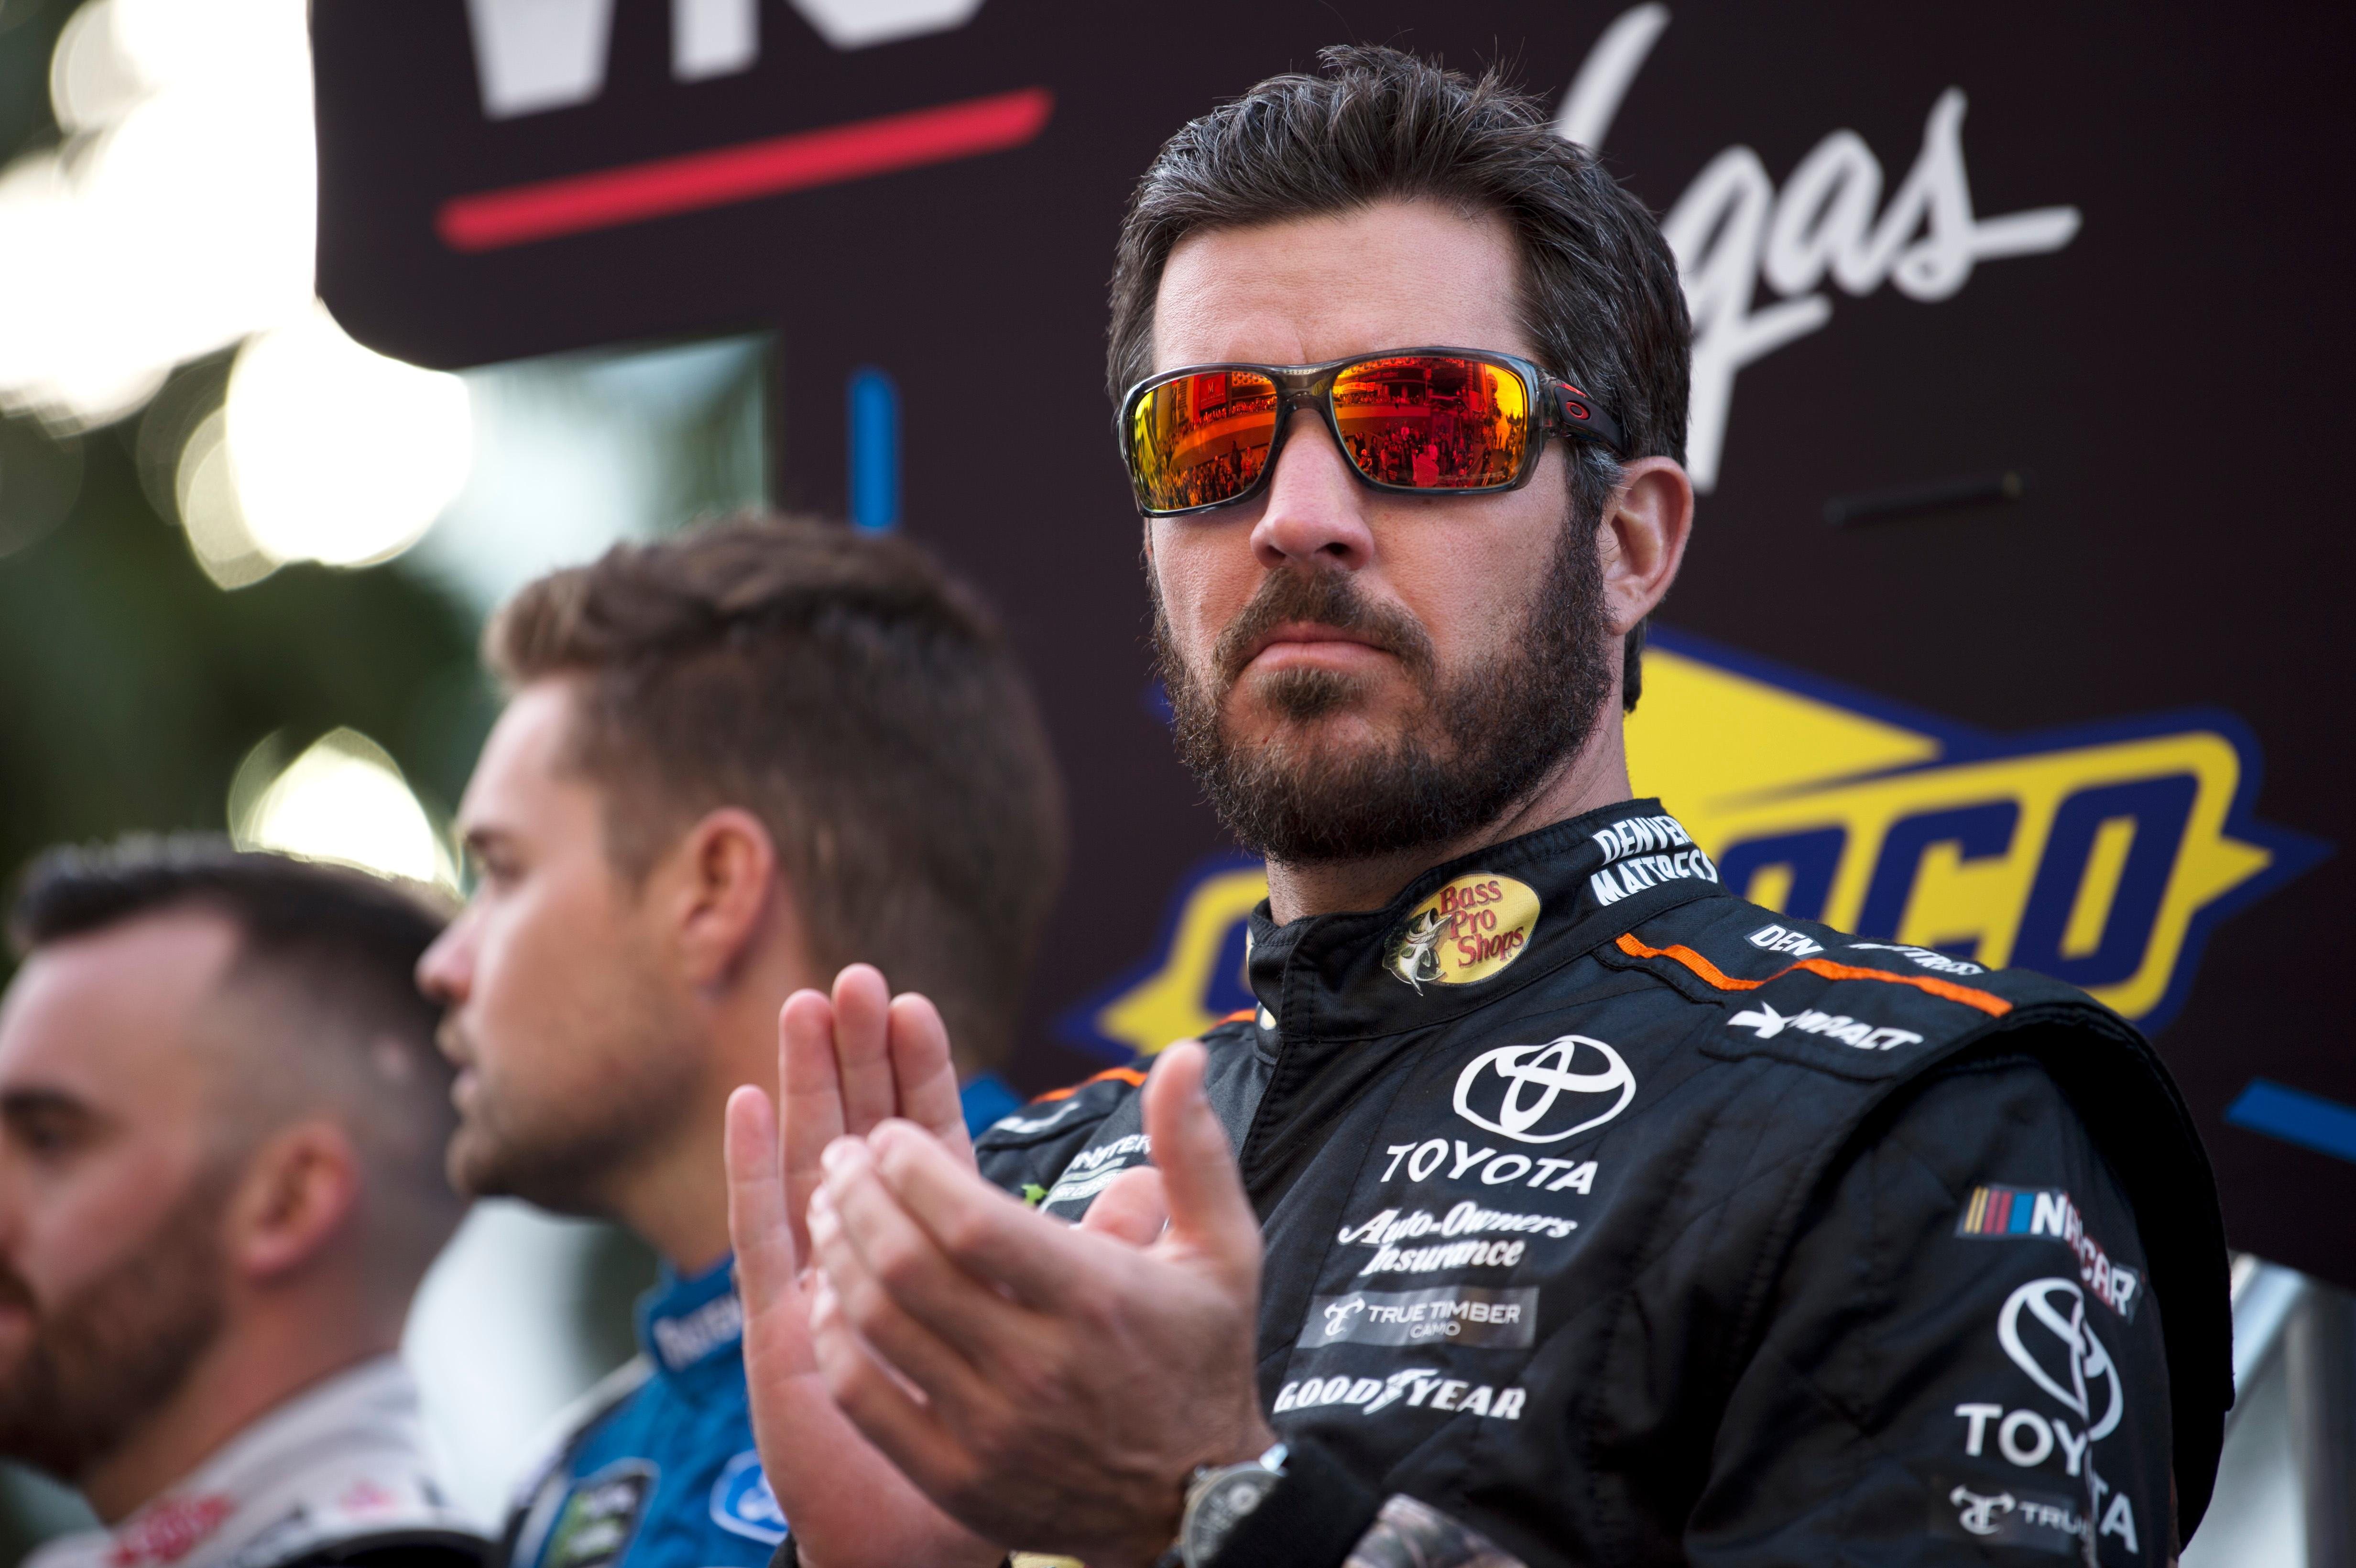 Season champion Martin Truex Jr. applauds during the NASCAR Victory Lap on the Las Vegas Strip being held as part of Champions Week Wednesday, November 29, 2017. CREDIT: Sam Morris/Las Vegas News Bureau